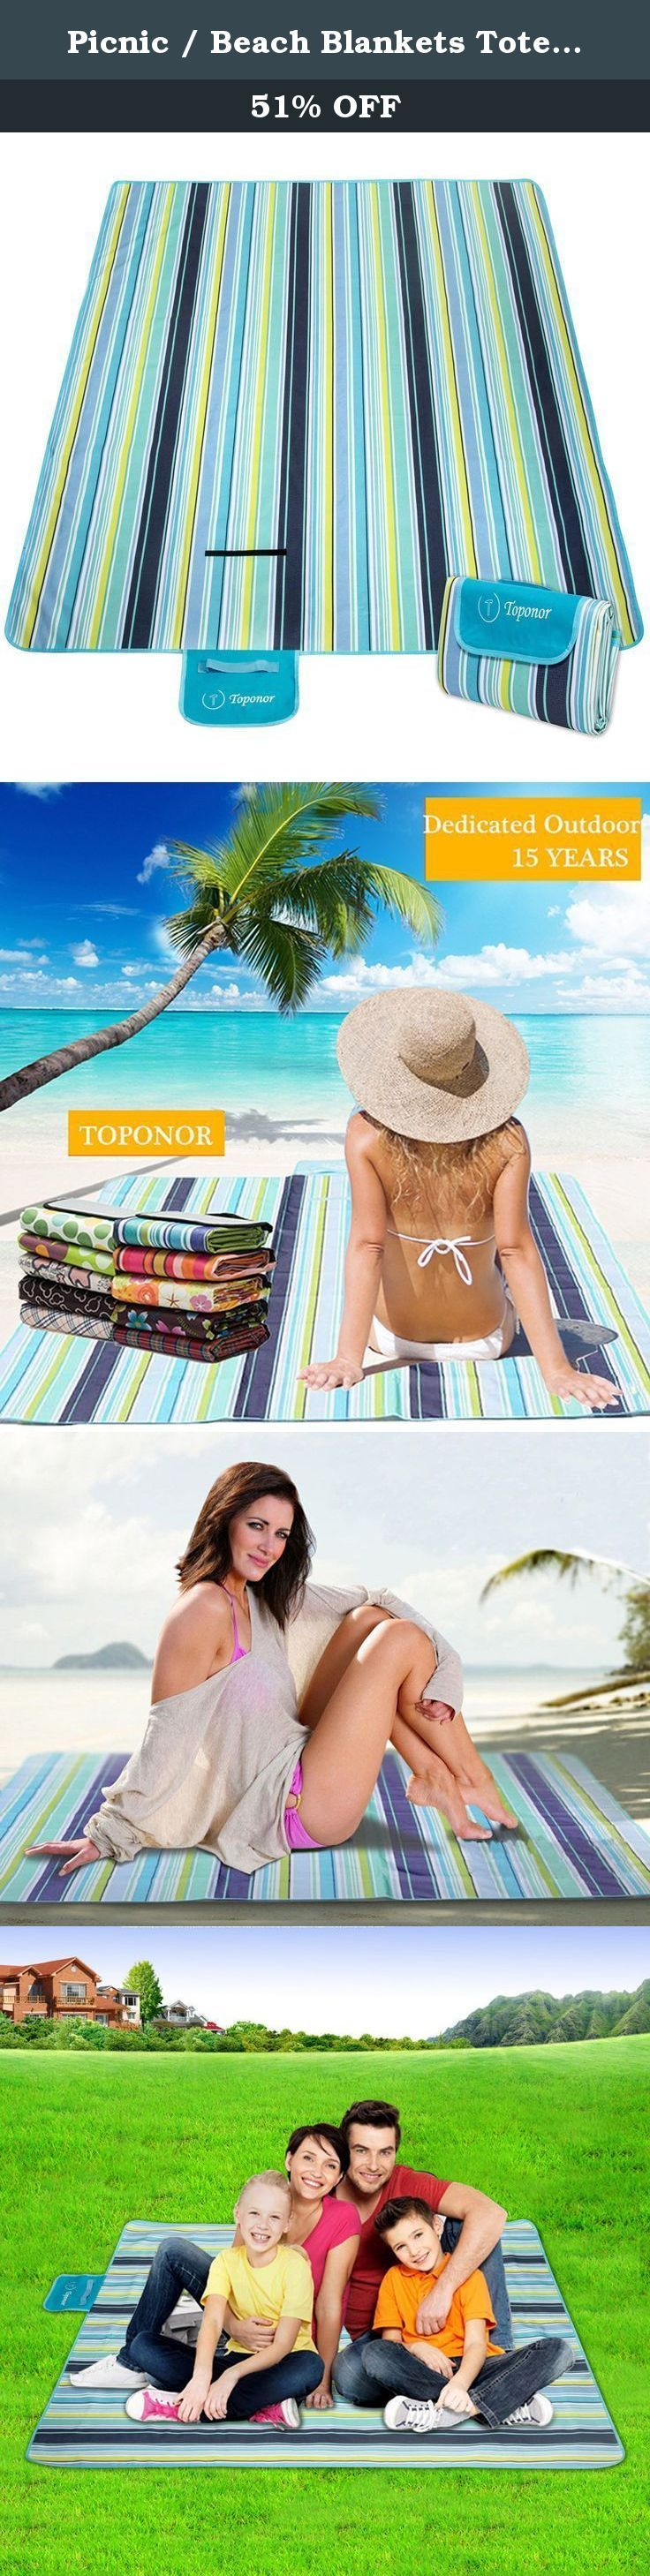 """Picnic / Beach Blankets Tote with Waterproof Backing (80 x 60""""). Enjoy your stress-free outside summer time with TOPONOR Picnic Blankets It should be stress-free and comfortable when having fun outdoor, that's where Picnic Blanket can take the stress out of worrying about what to sit on and bring you more relax and happiness with your families. TOPONOT Picnic Blanket will meet the different needs for picnic, camping, sporting events, soccer sidelines, games, park on a wet-grass or even…"""